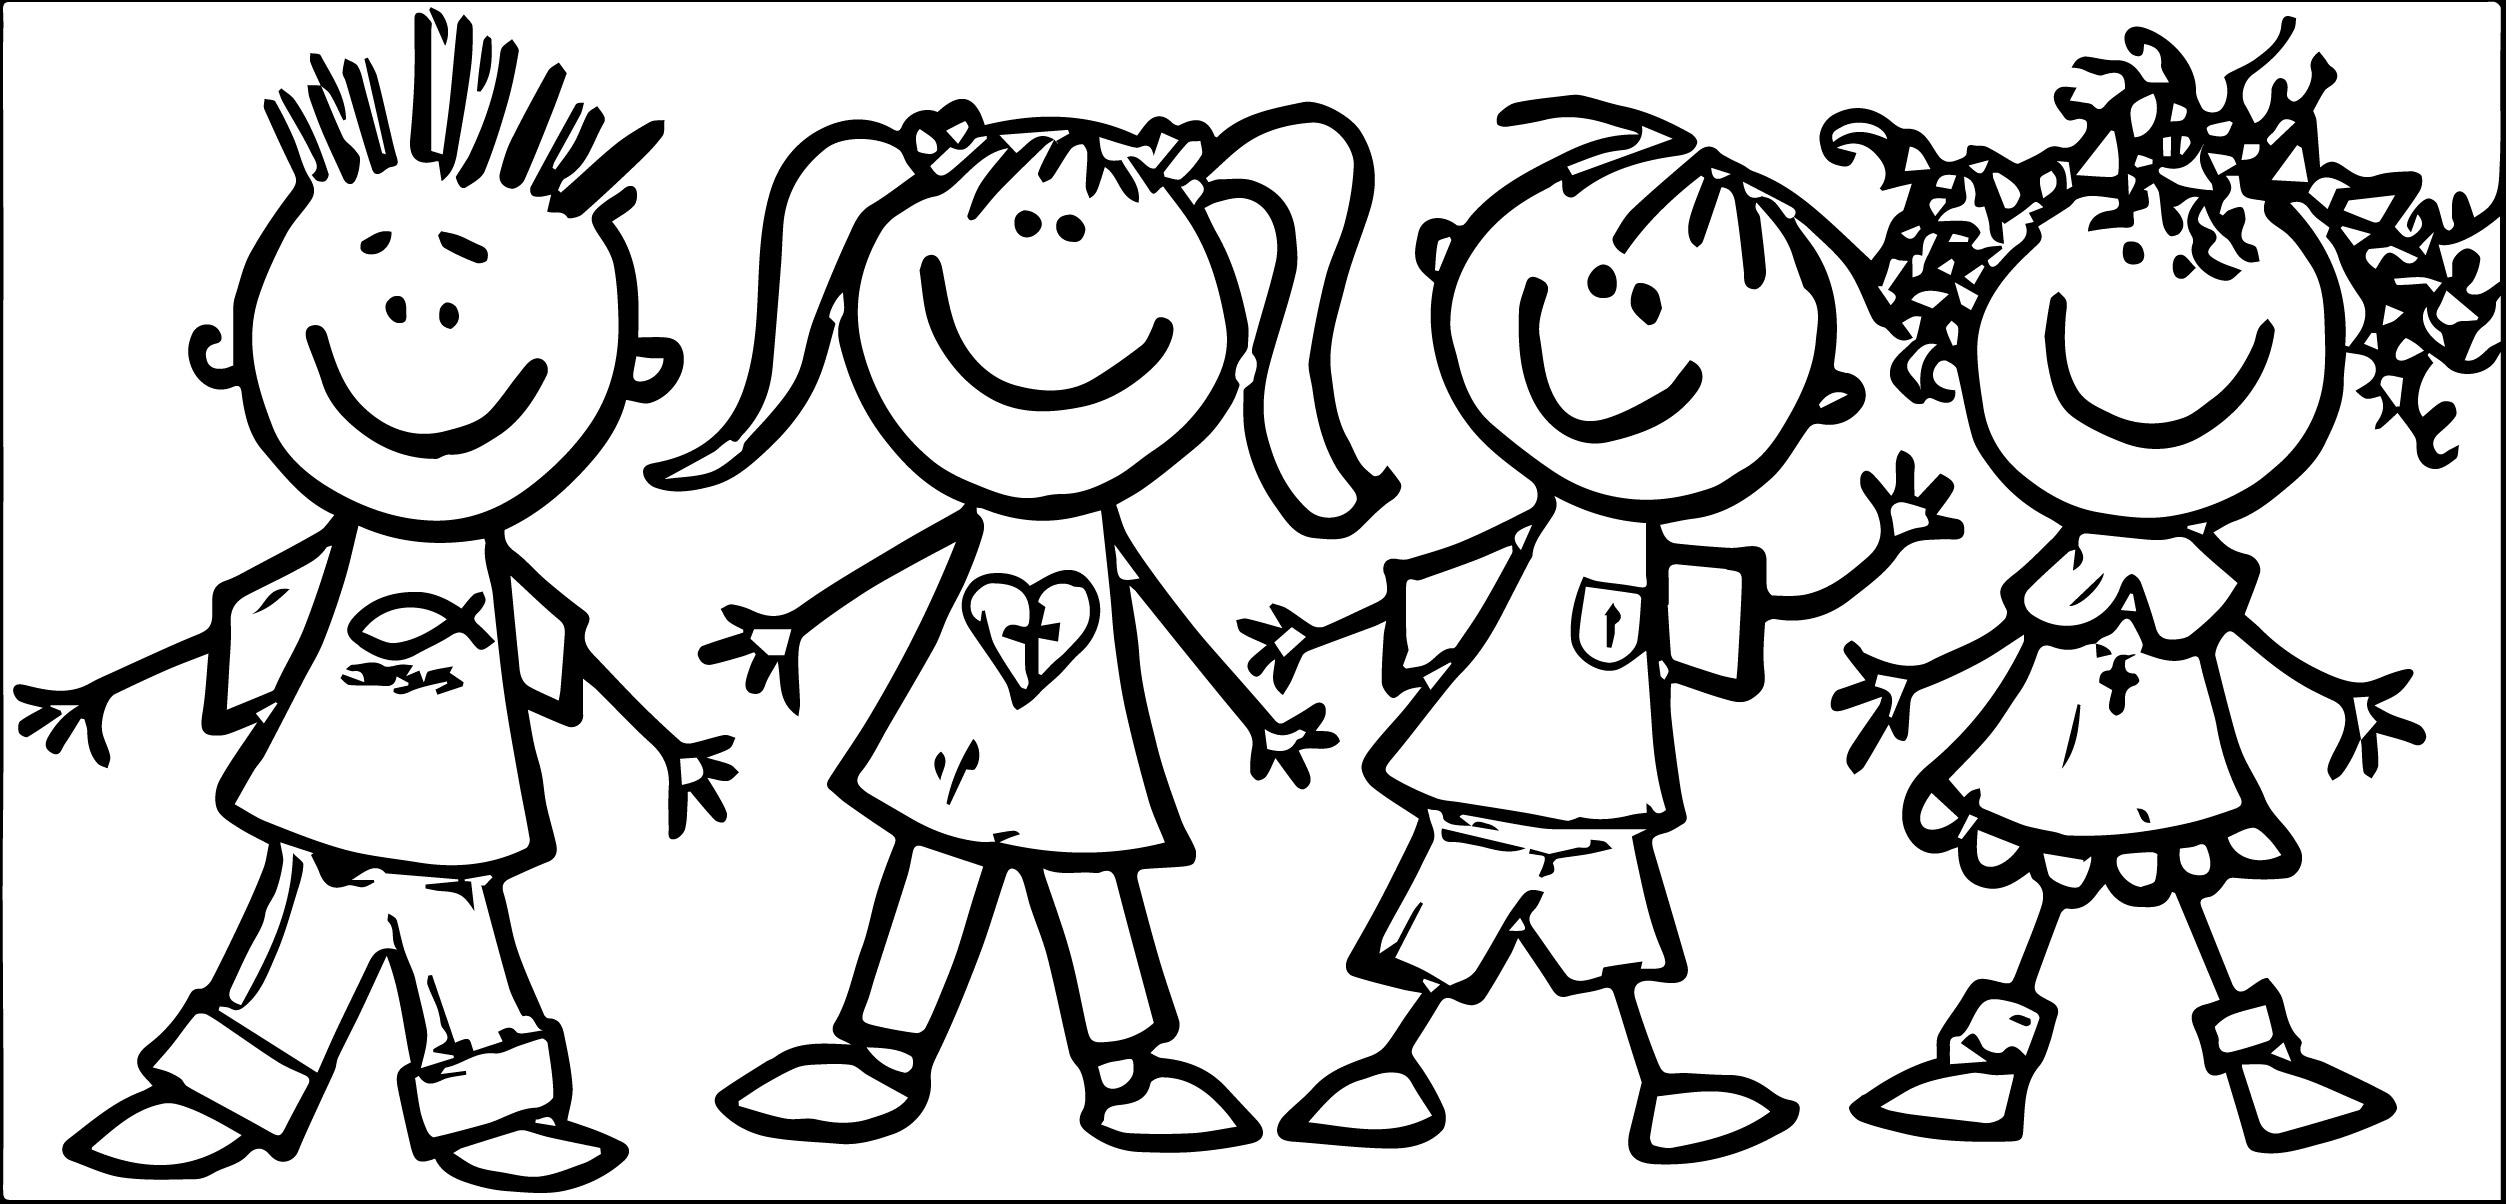 Preschool Children Clipart Black And White